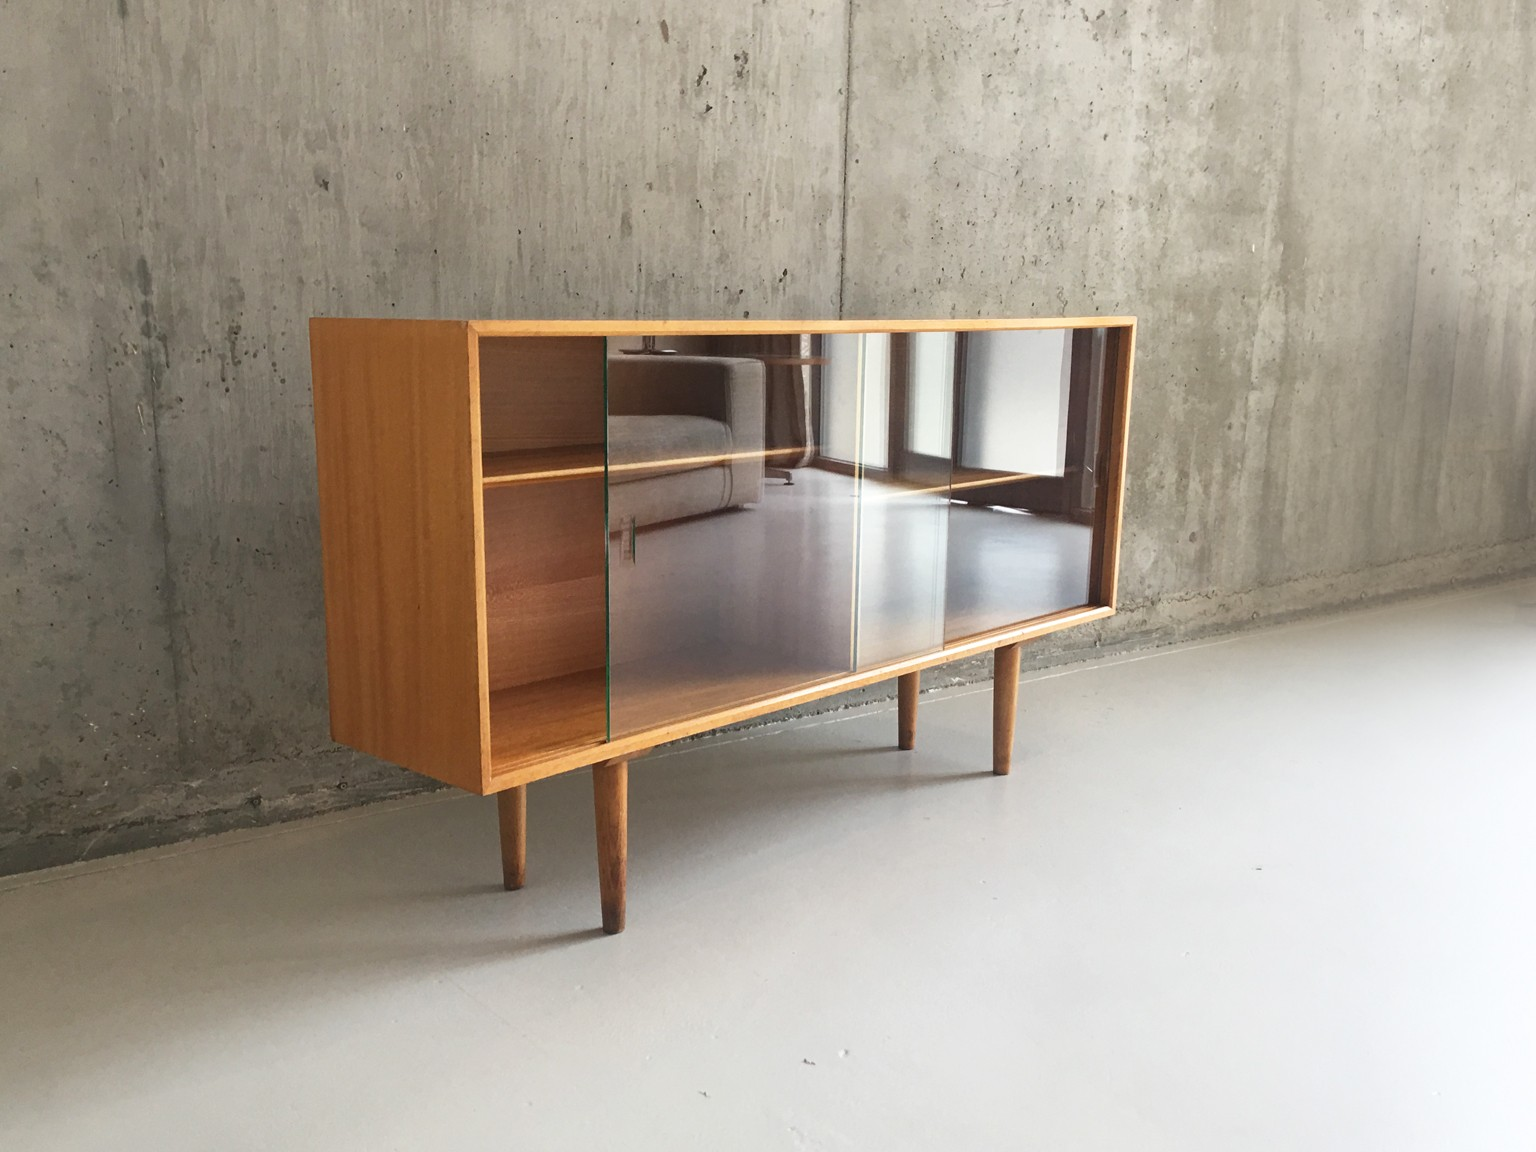 100 Beech Sideboard Mid Century 1950s 60s Ercol  : vintage beech sideboard by robin day for hille interplan 1950s from 45.76.66.238 size 1536 x 1152 jpeg 254kB